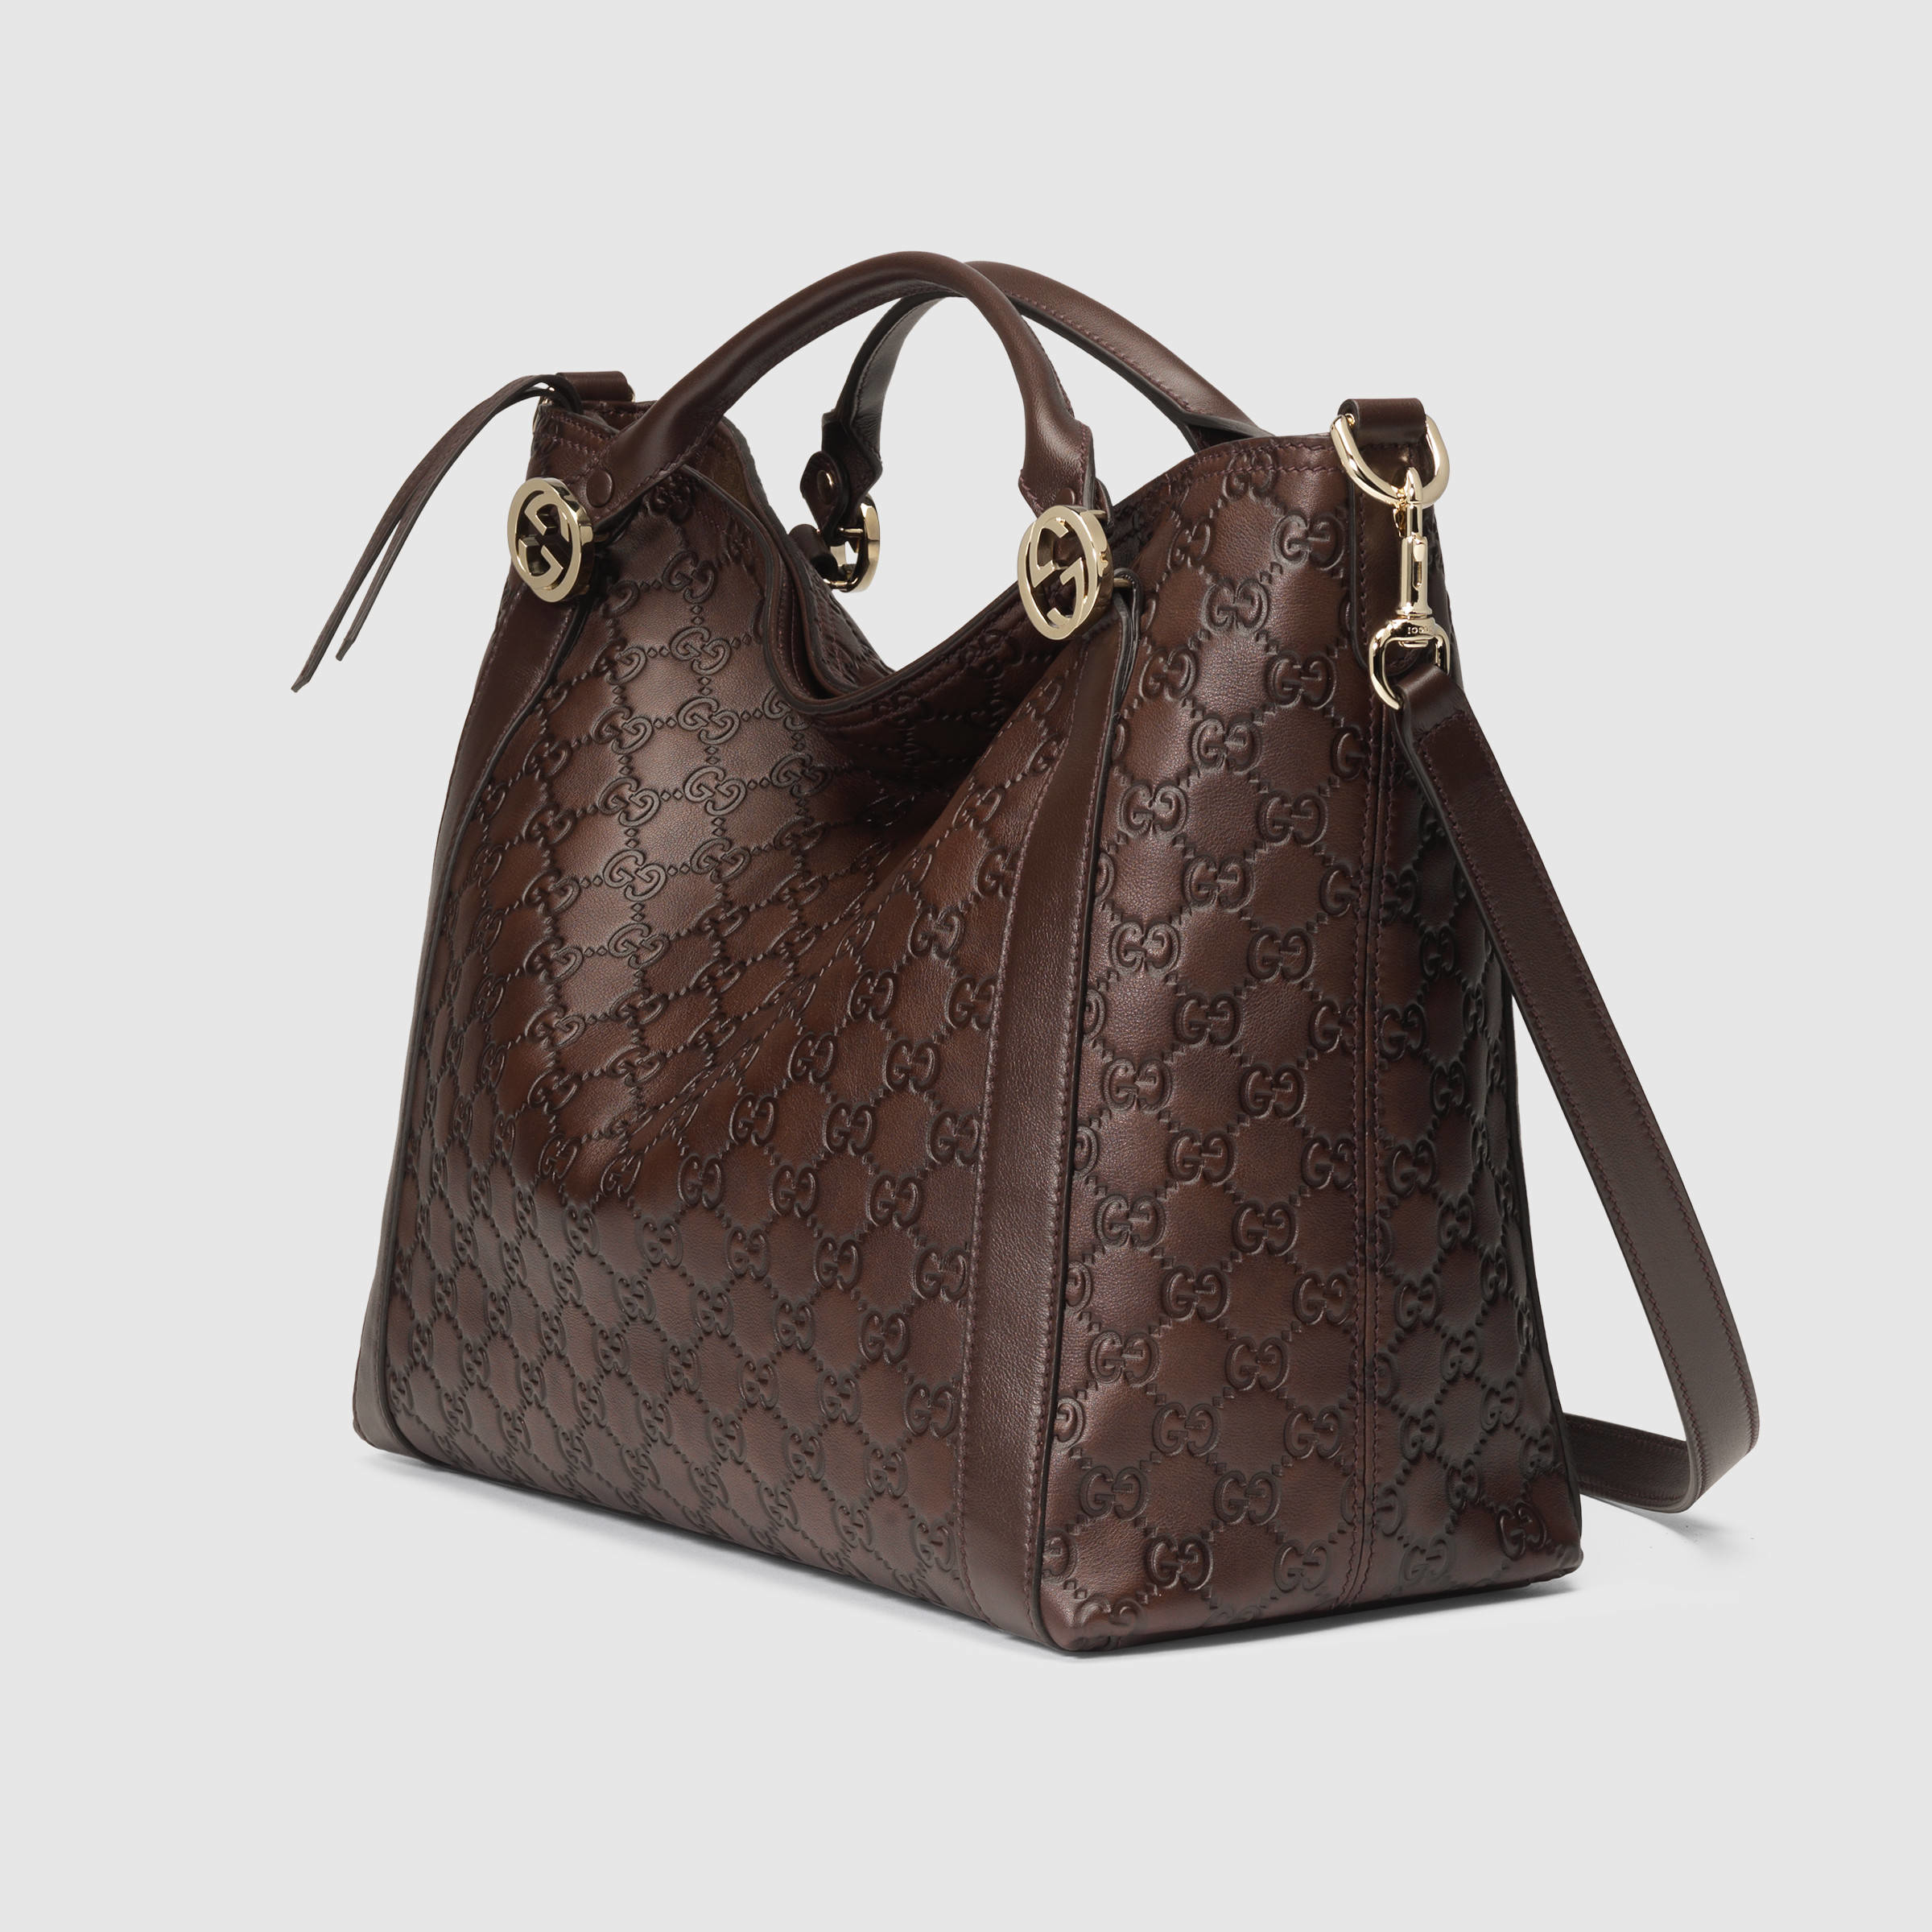 Lyst - Gucci Miss Gg Ssima Leather Top Handle Bag in Brown 2fda49936